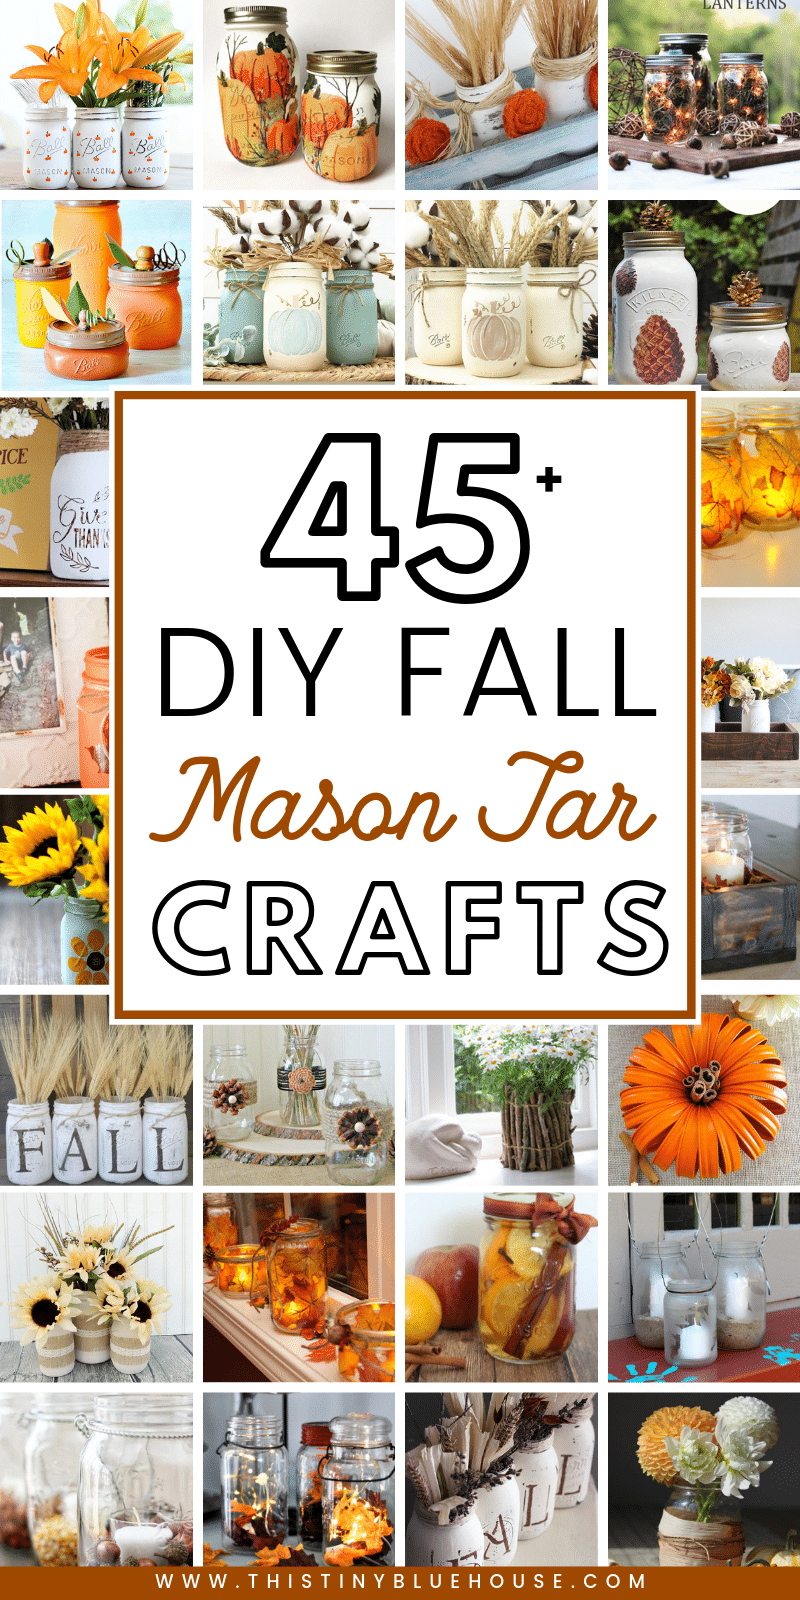 Get your home fall ready with these best fall mason jar crafts. Easy to make these best fall mason jar crafts are a fun way to glam up your home for autumn. #masonjarcrafts #masonjarcraftsforfall #masonjarcraftsDIY #fallmasonjarcrafts #DIYfalldecor #FallDIYdecor #DIYautumndecor #famrhousfalldecor